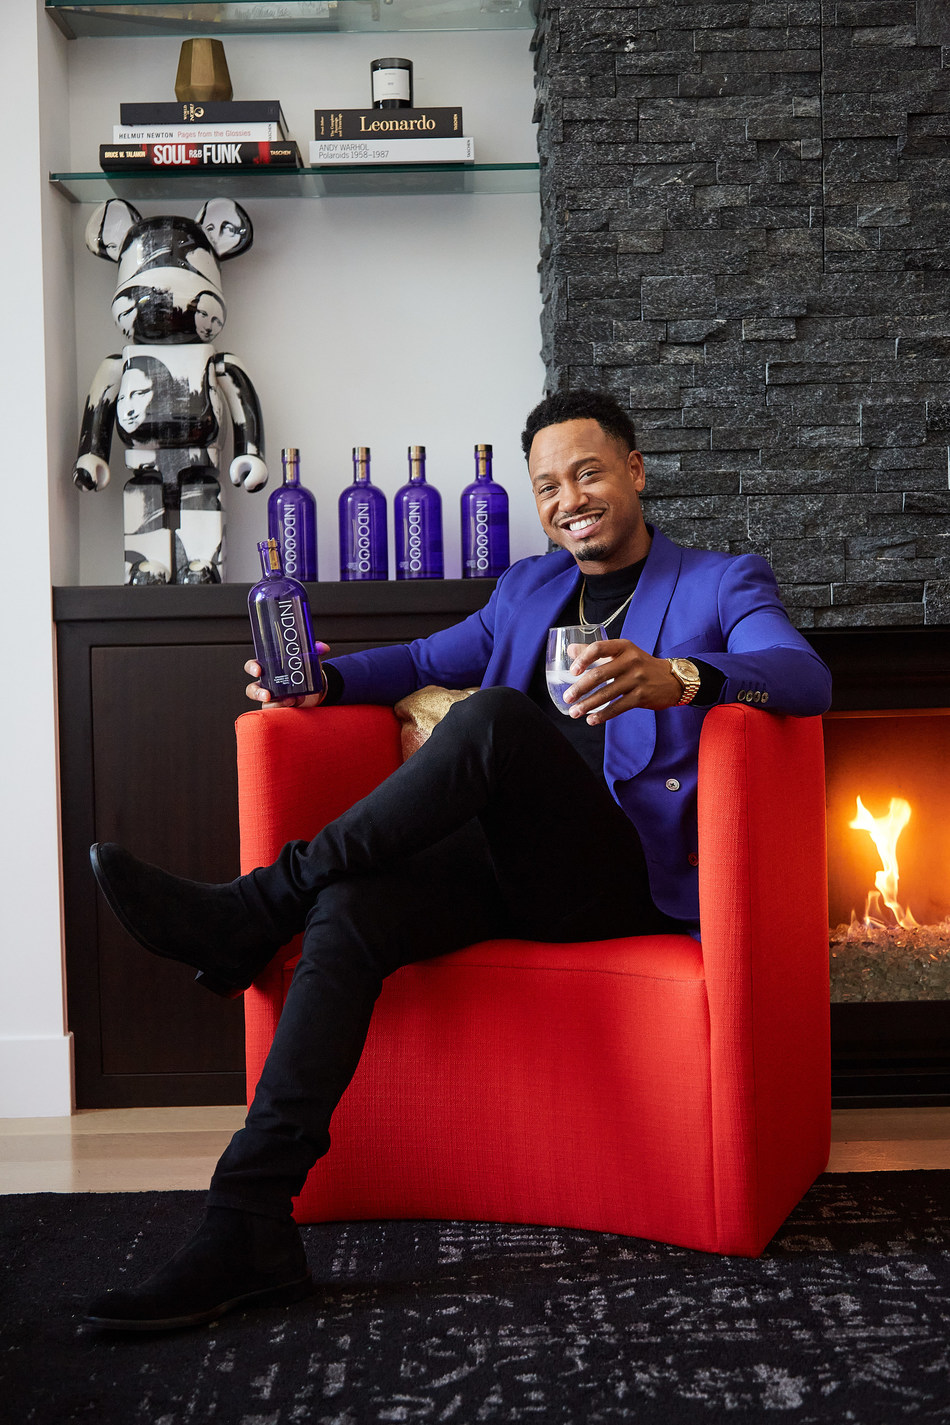 Already a well-established actor, host, producer, entrepreneur and philanthropist, Terrence J will now serve as Trusted Spirits' first Creative Director.